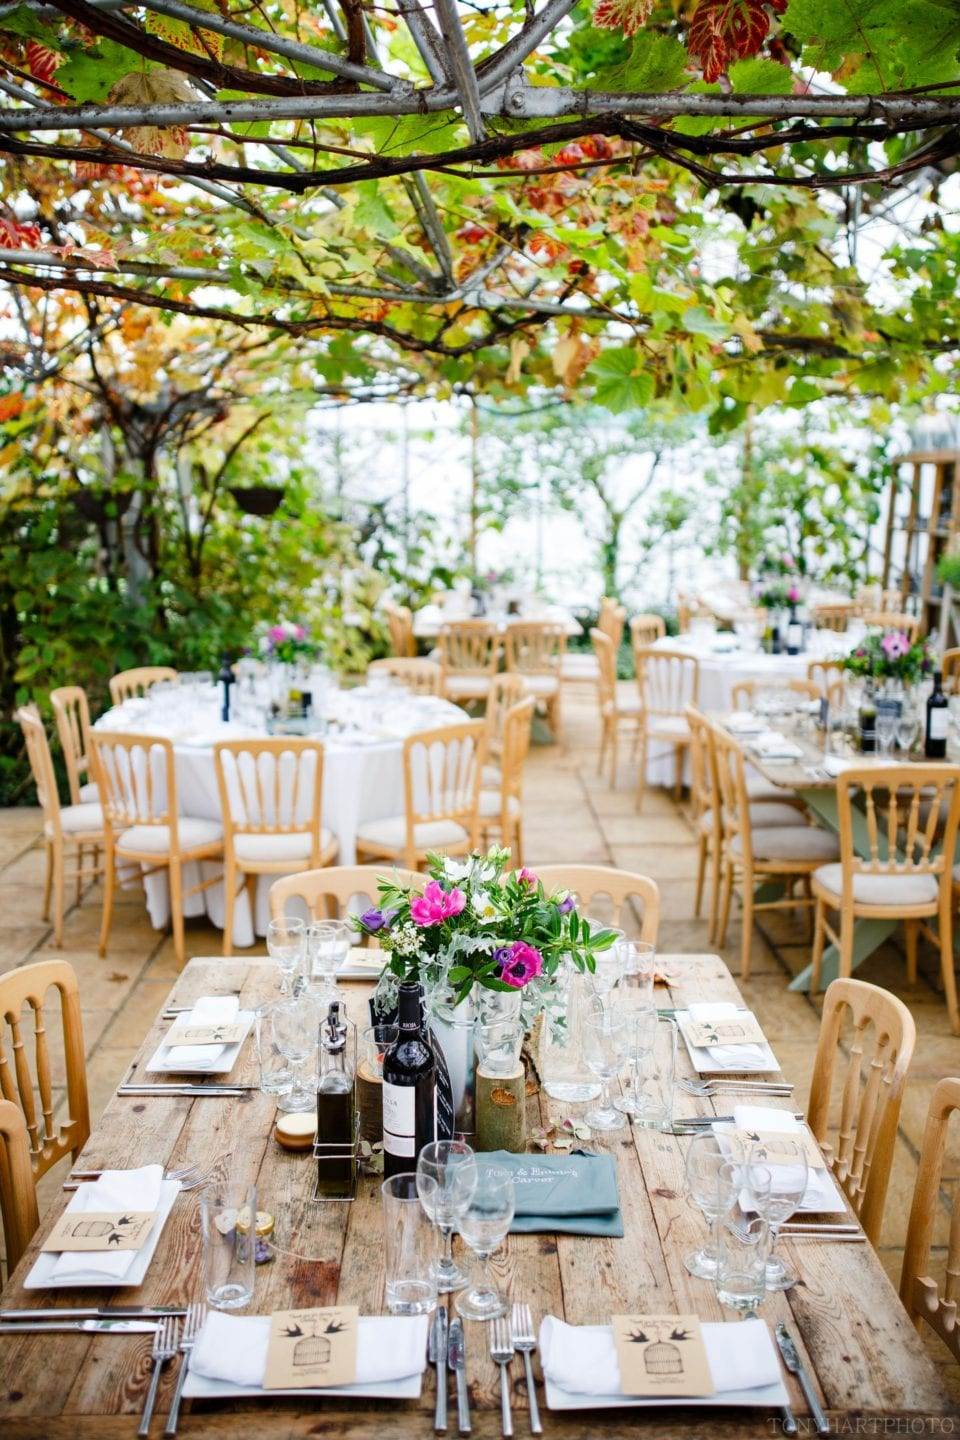 The incredible interior of the greenhouses at West Green House prepared for Emma & Tom's wedding breakfast